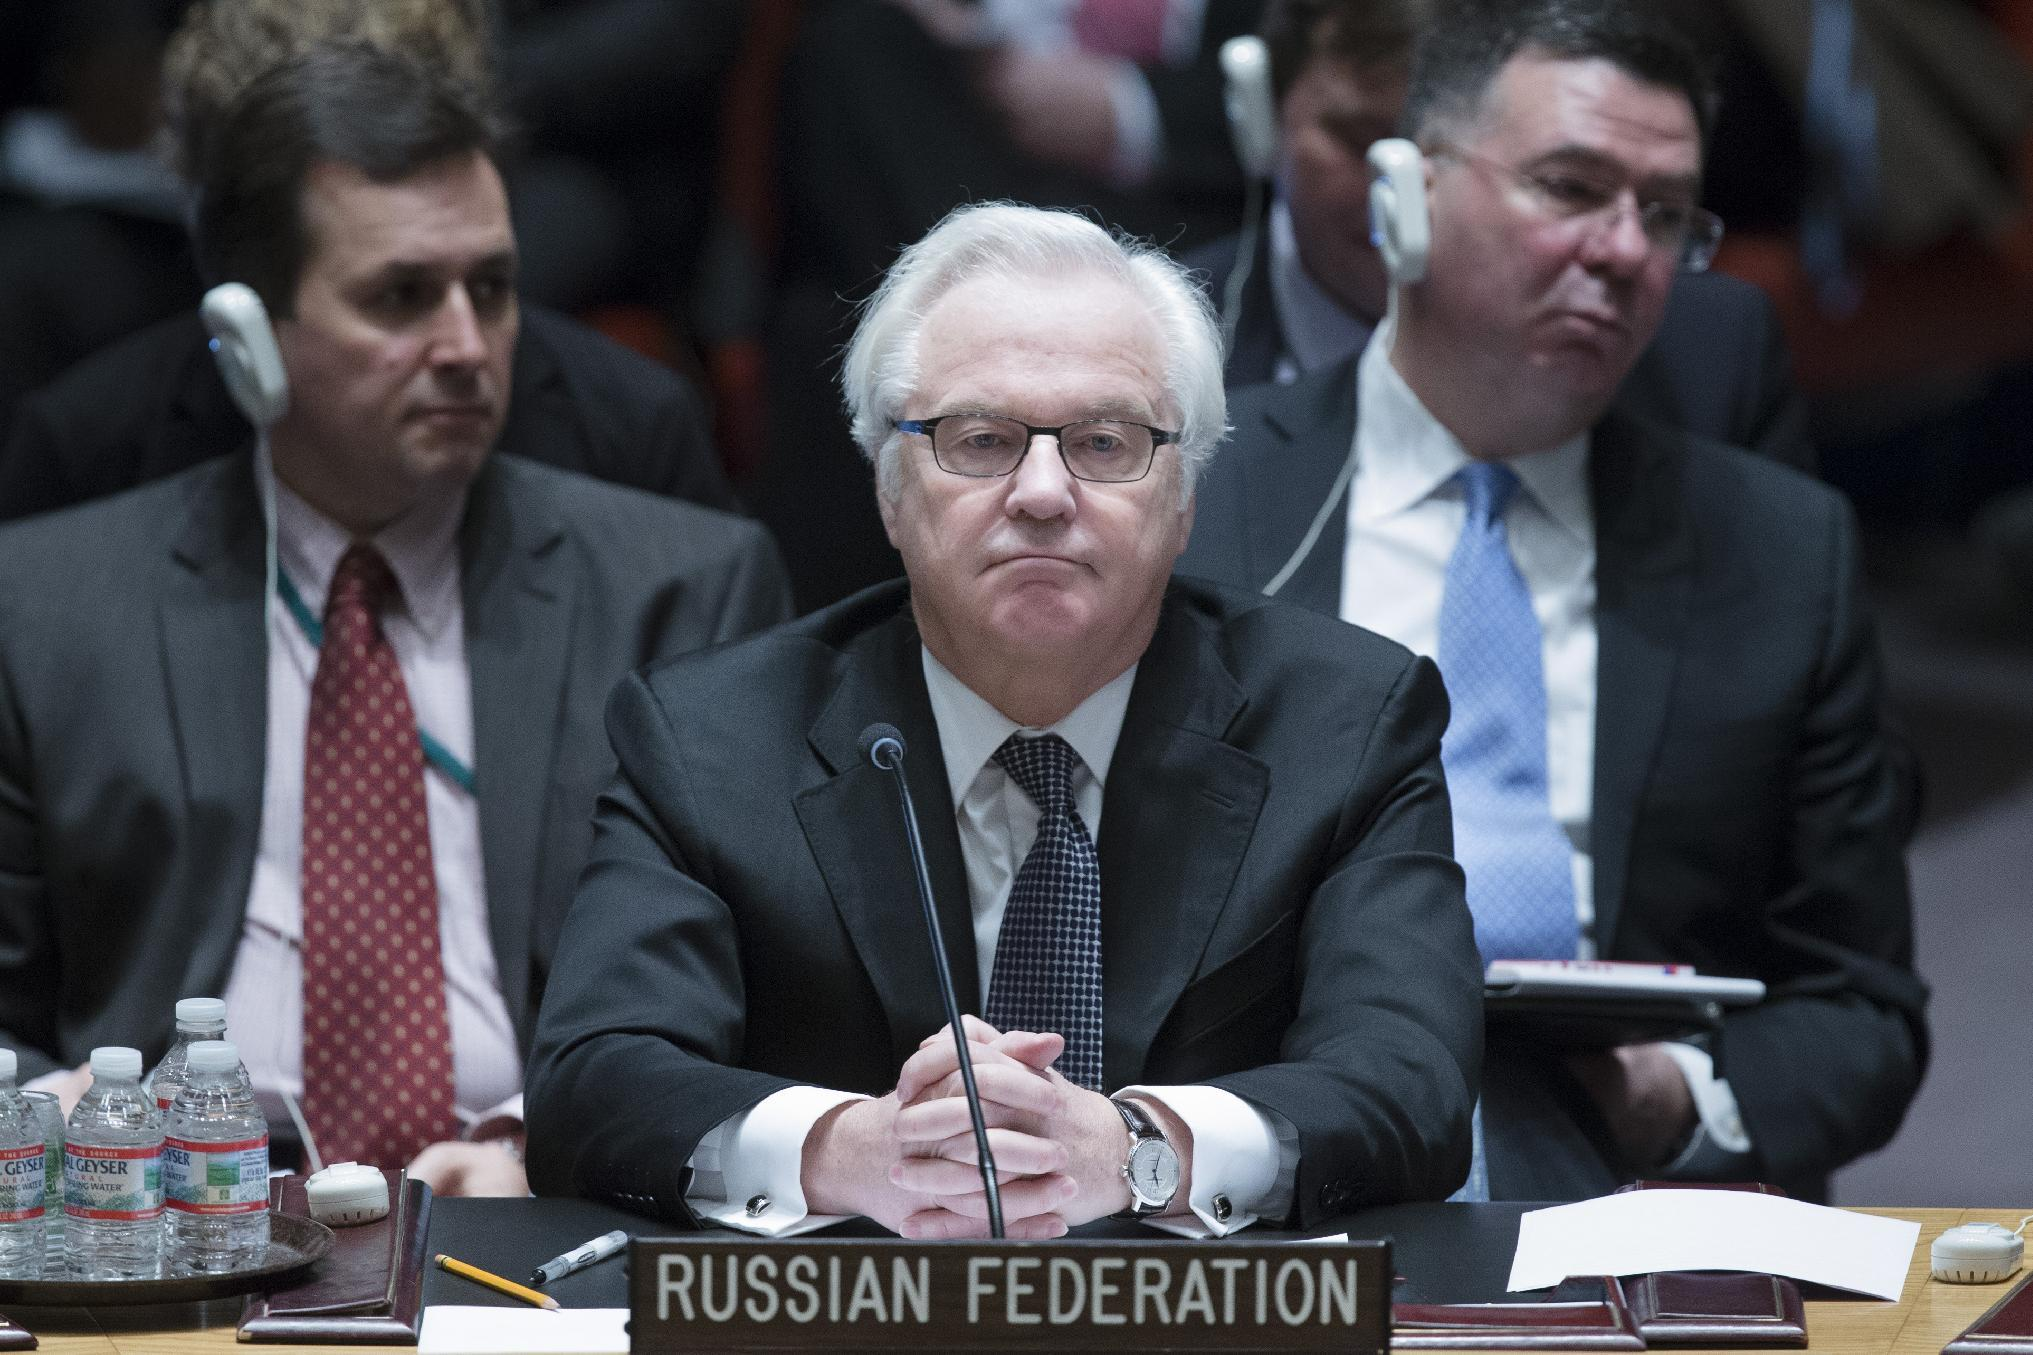 Russia's U.N. Ambassador Vitaly Churkin listens during a U.N. Security Council meeting on the Ukraine crisis, Saturday, March 15, 2014, at United Nations headquarters. (AP Photo/John Minchillo)